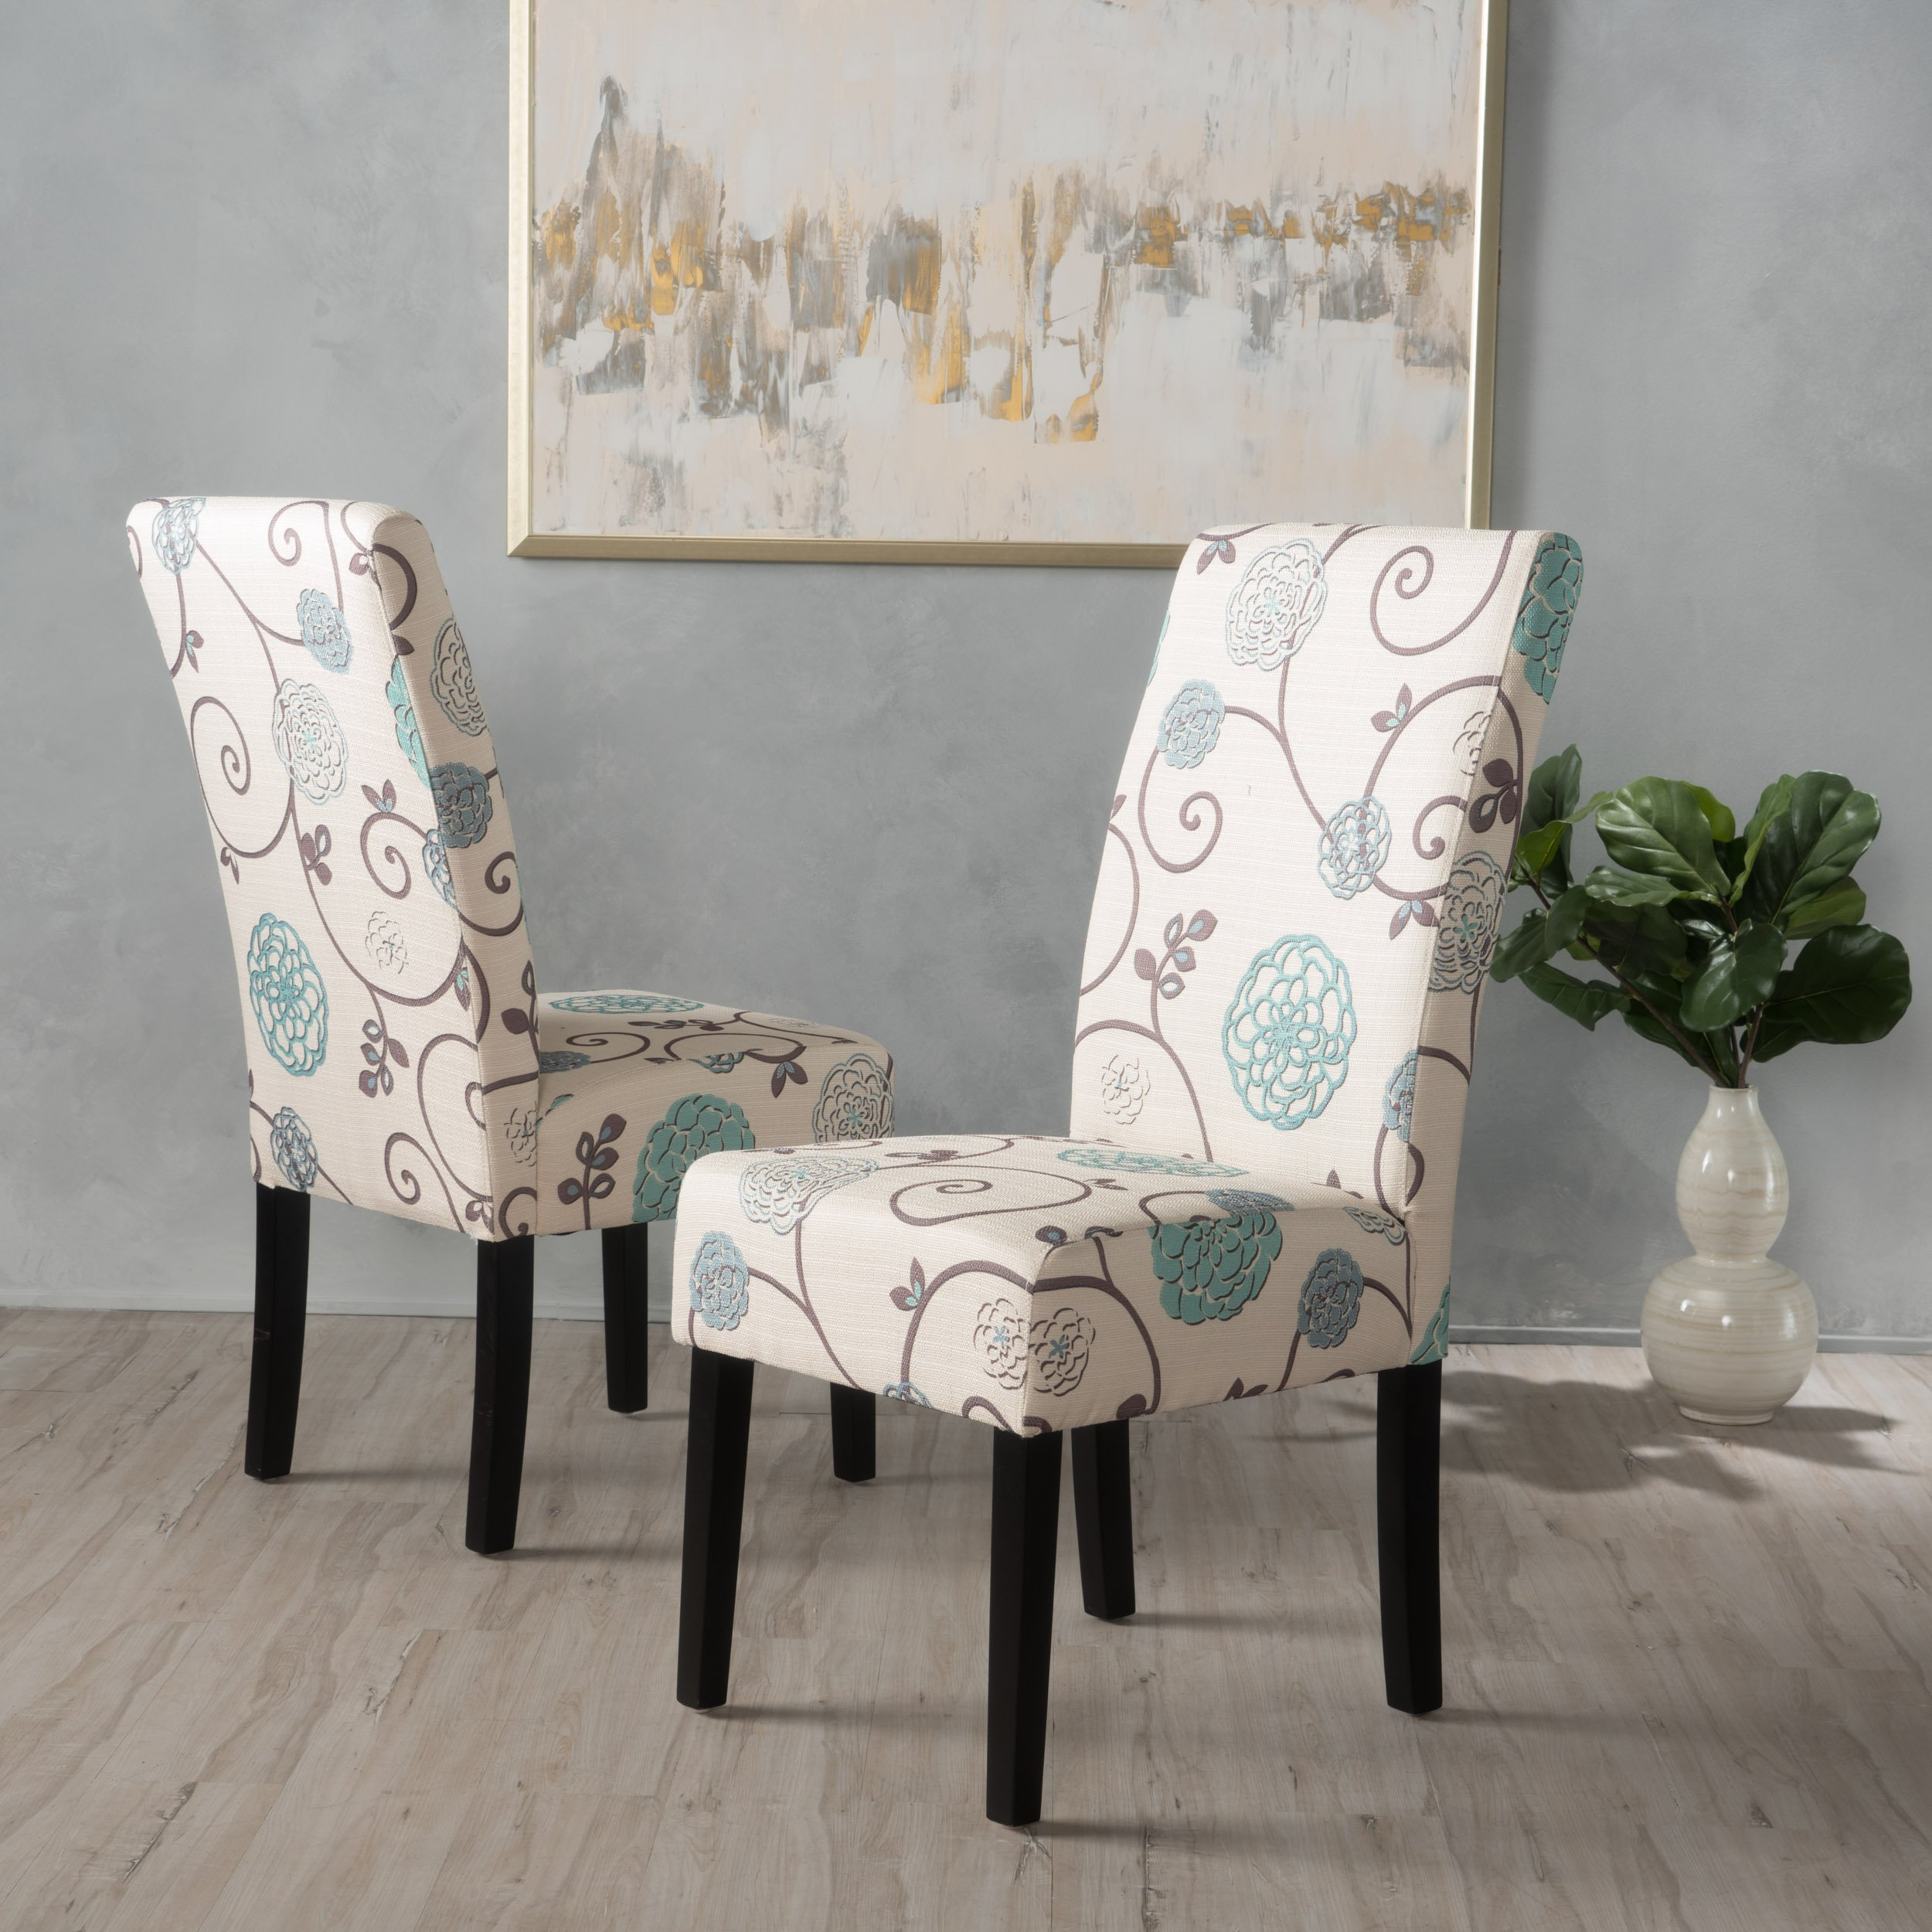 Christopher Knight Home 299448 Pertica Dining Chair Set, White/Blue Floral by Christopher Knight Home (Image #2)